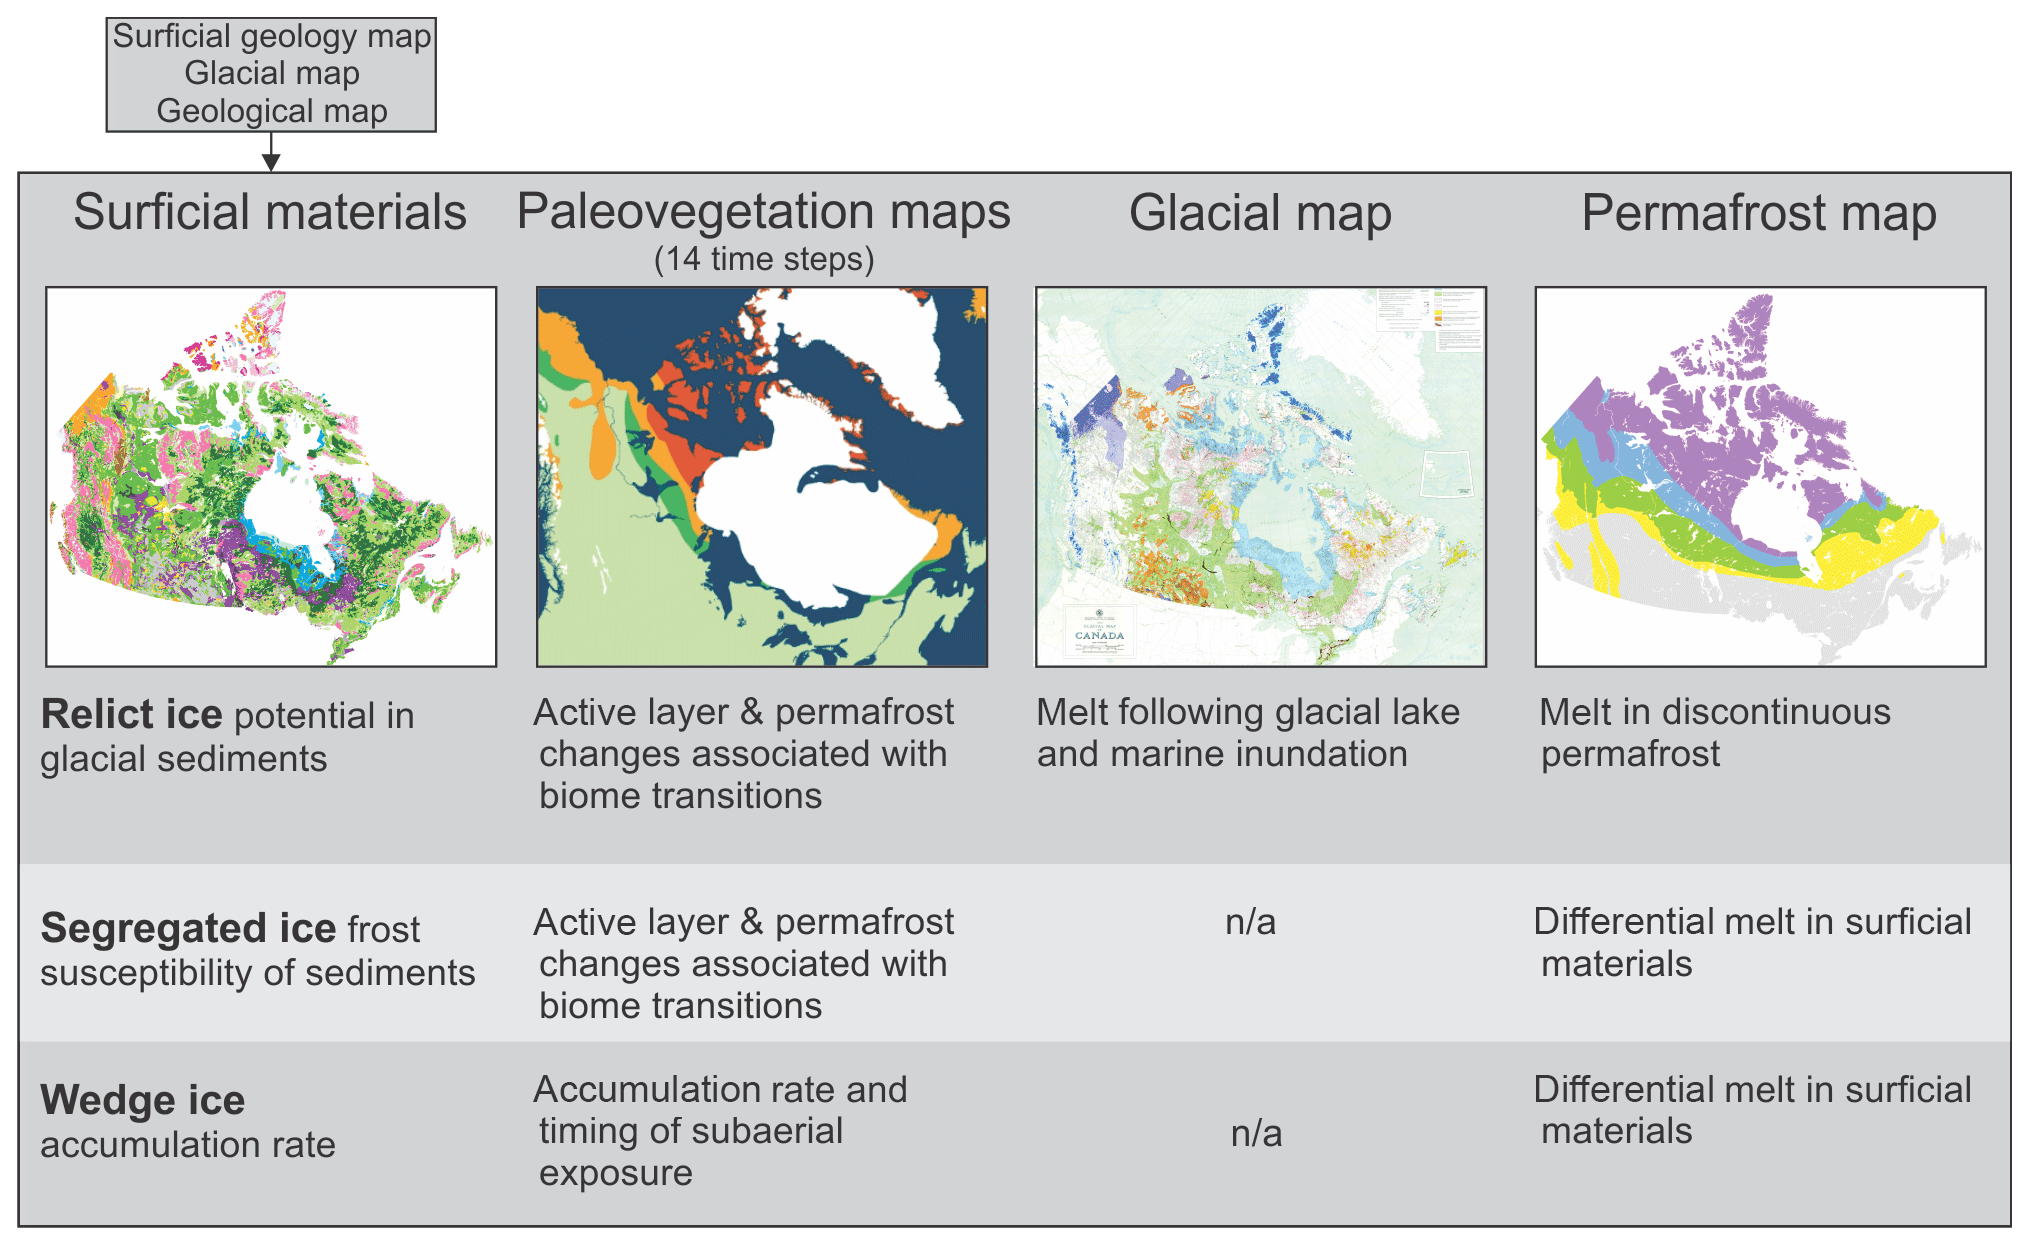 TC - New ground ice maps for Canada using a paleogeographic